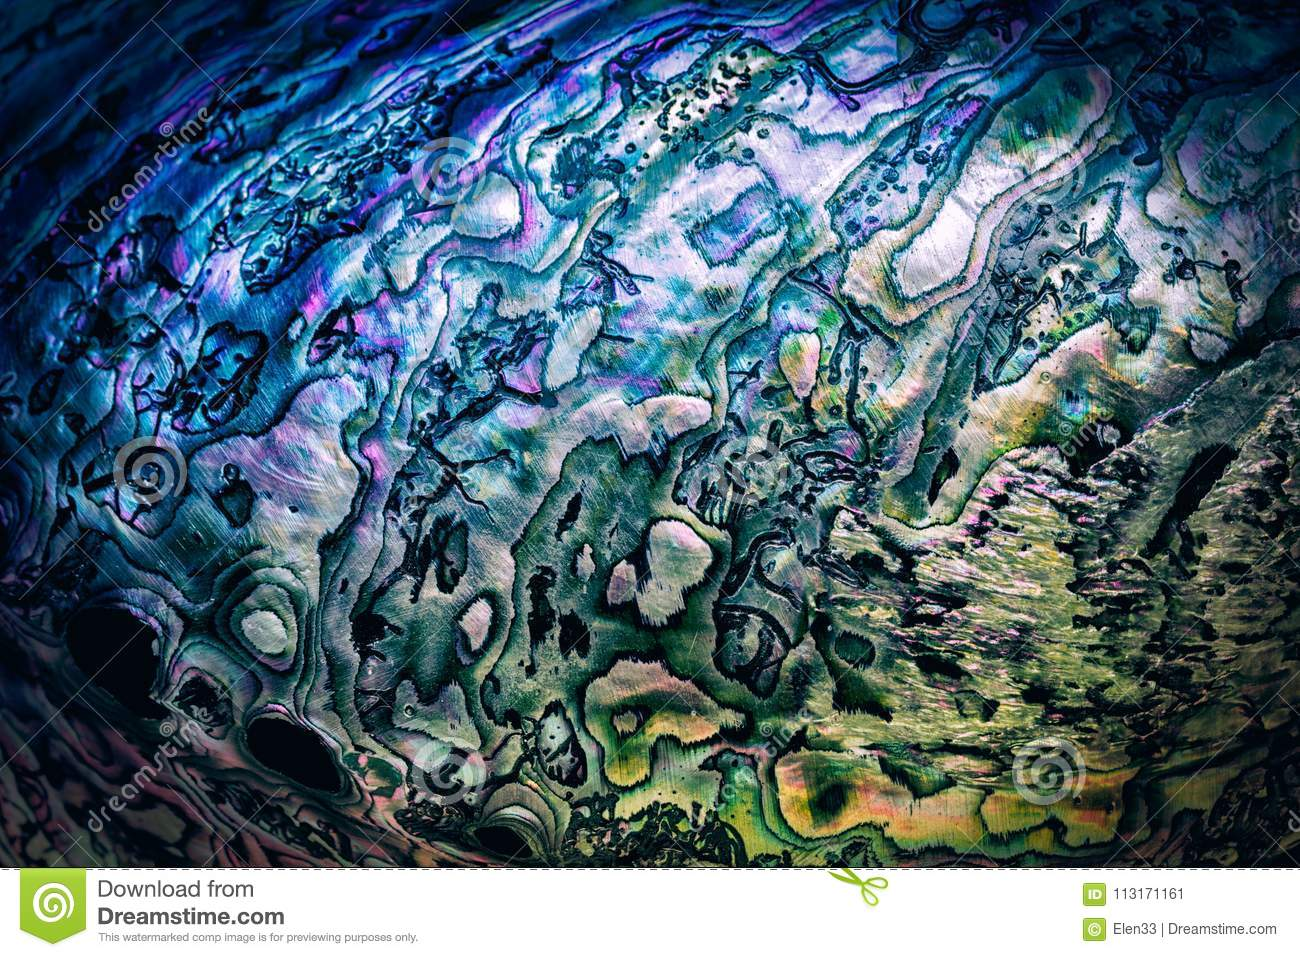 Nature texture pattern of nacre mother-of-pearl